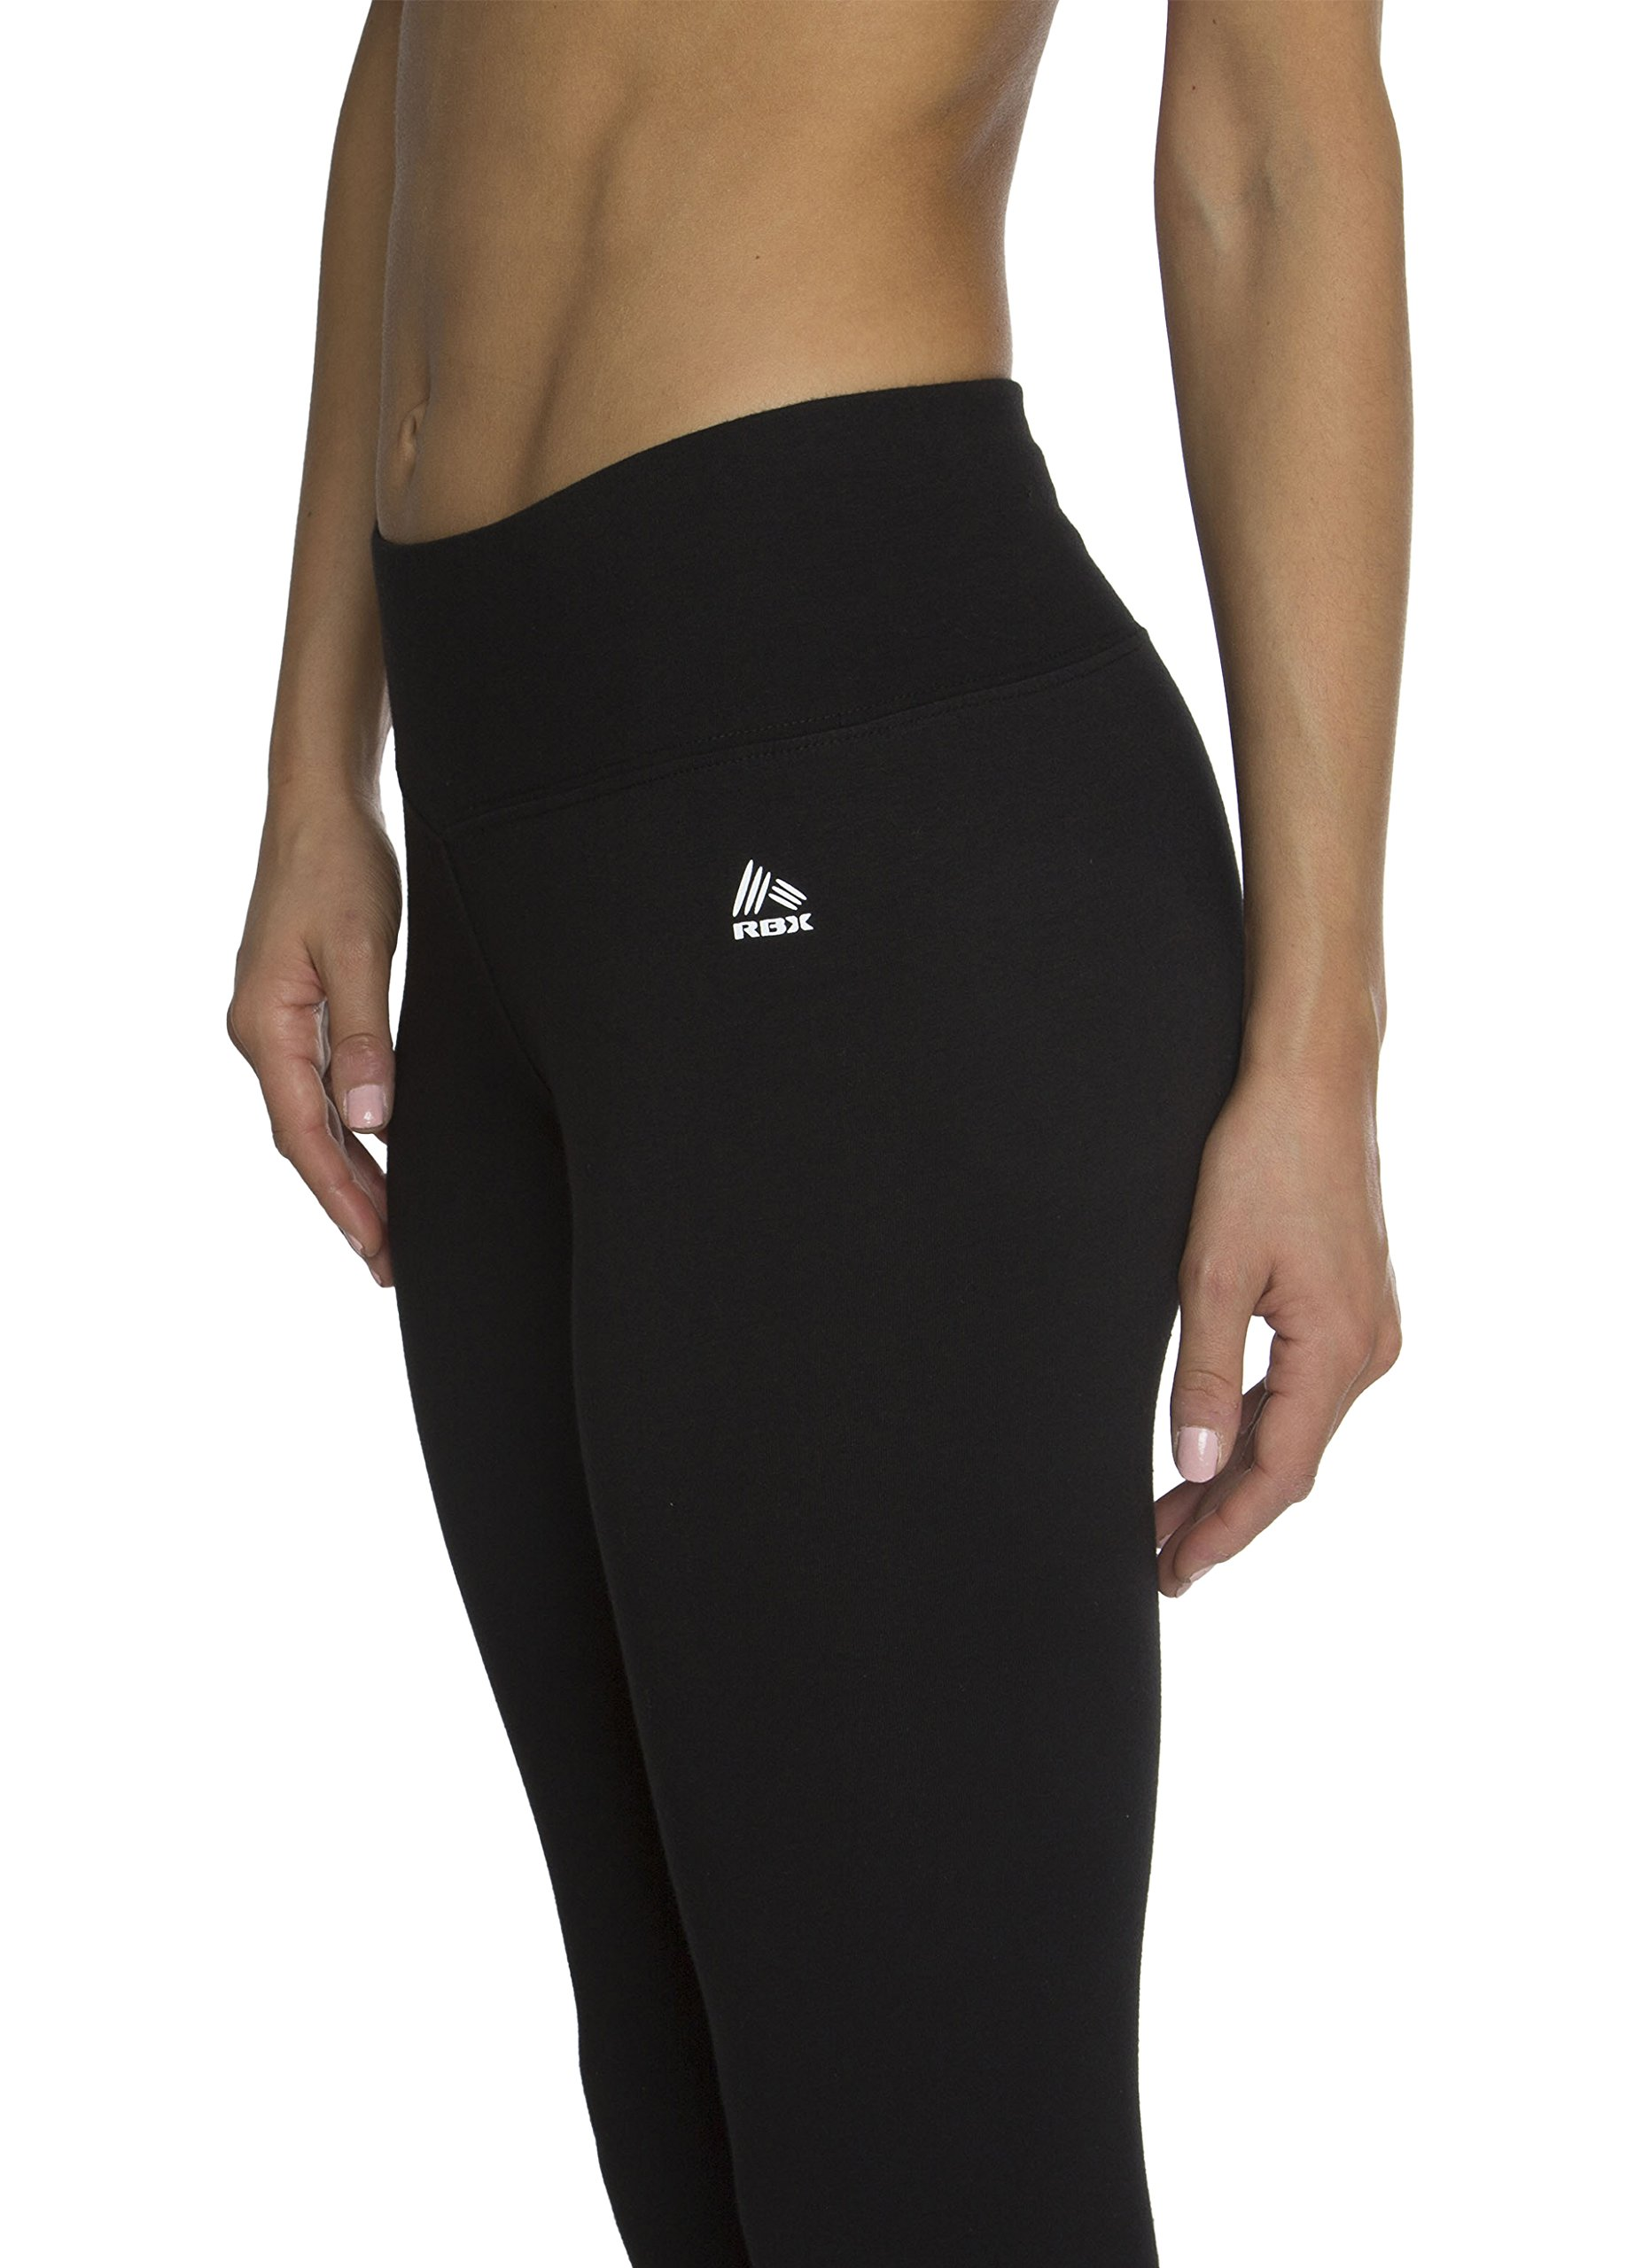 a640a9cb5b009 RBX Active Women's Cotton-Spandex Jersey Leggings - Shop The Weed Scene